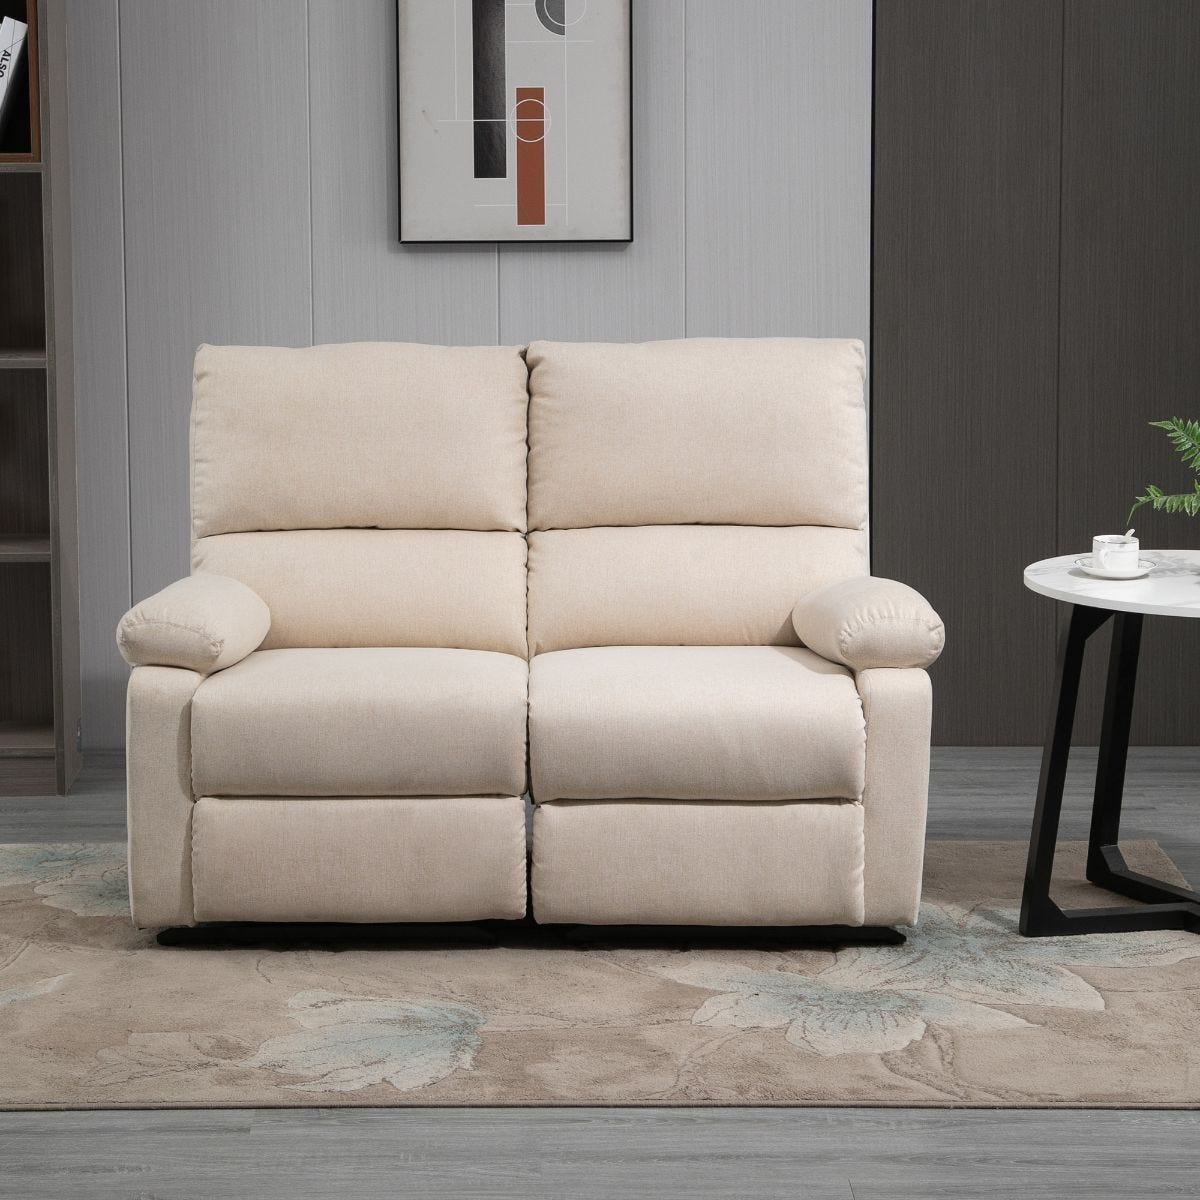 Manual Recliner 2 Seater Sofa Linen Style Fabric Beige